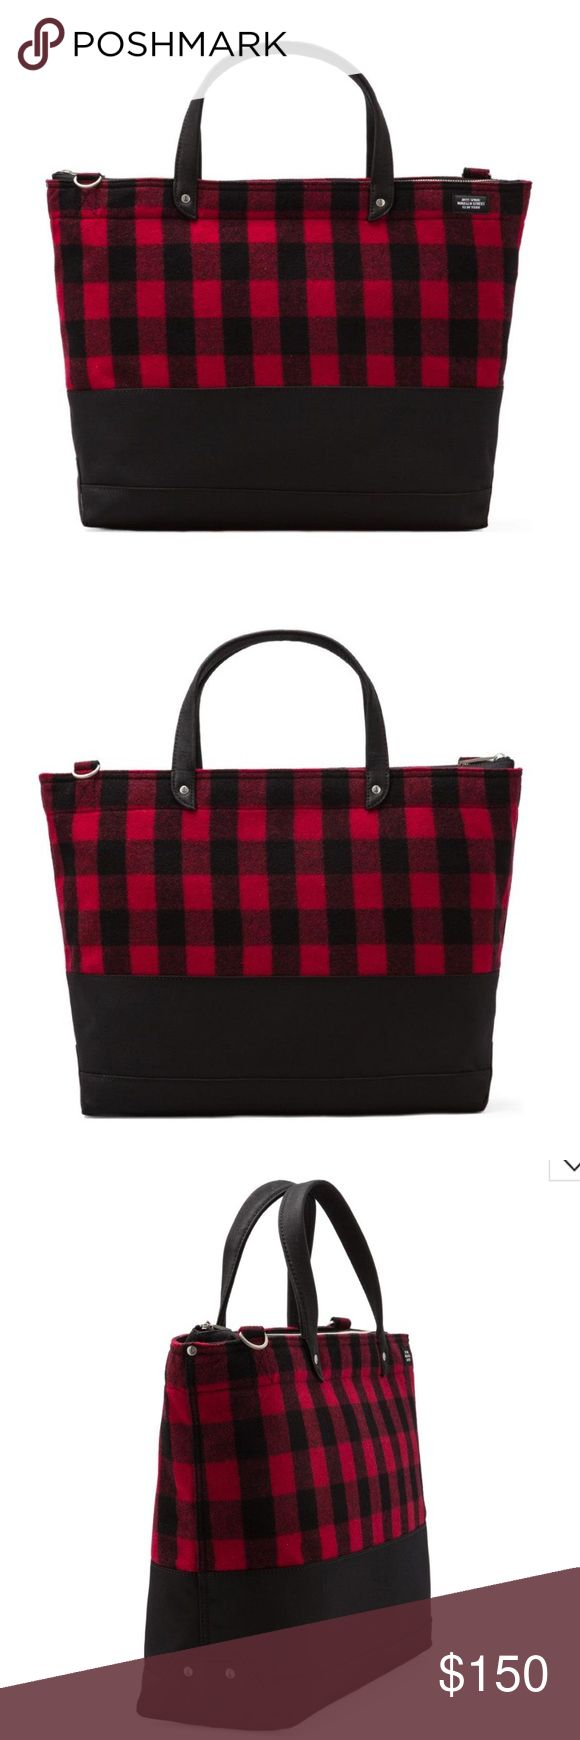 Jack Spade Zip Coal Bag Buffalo Check NWT New with tag! Retails $275. Never used. Jack Spade Bags